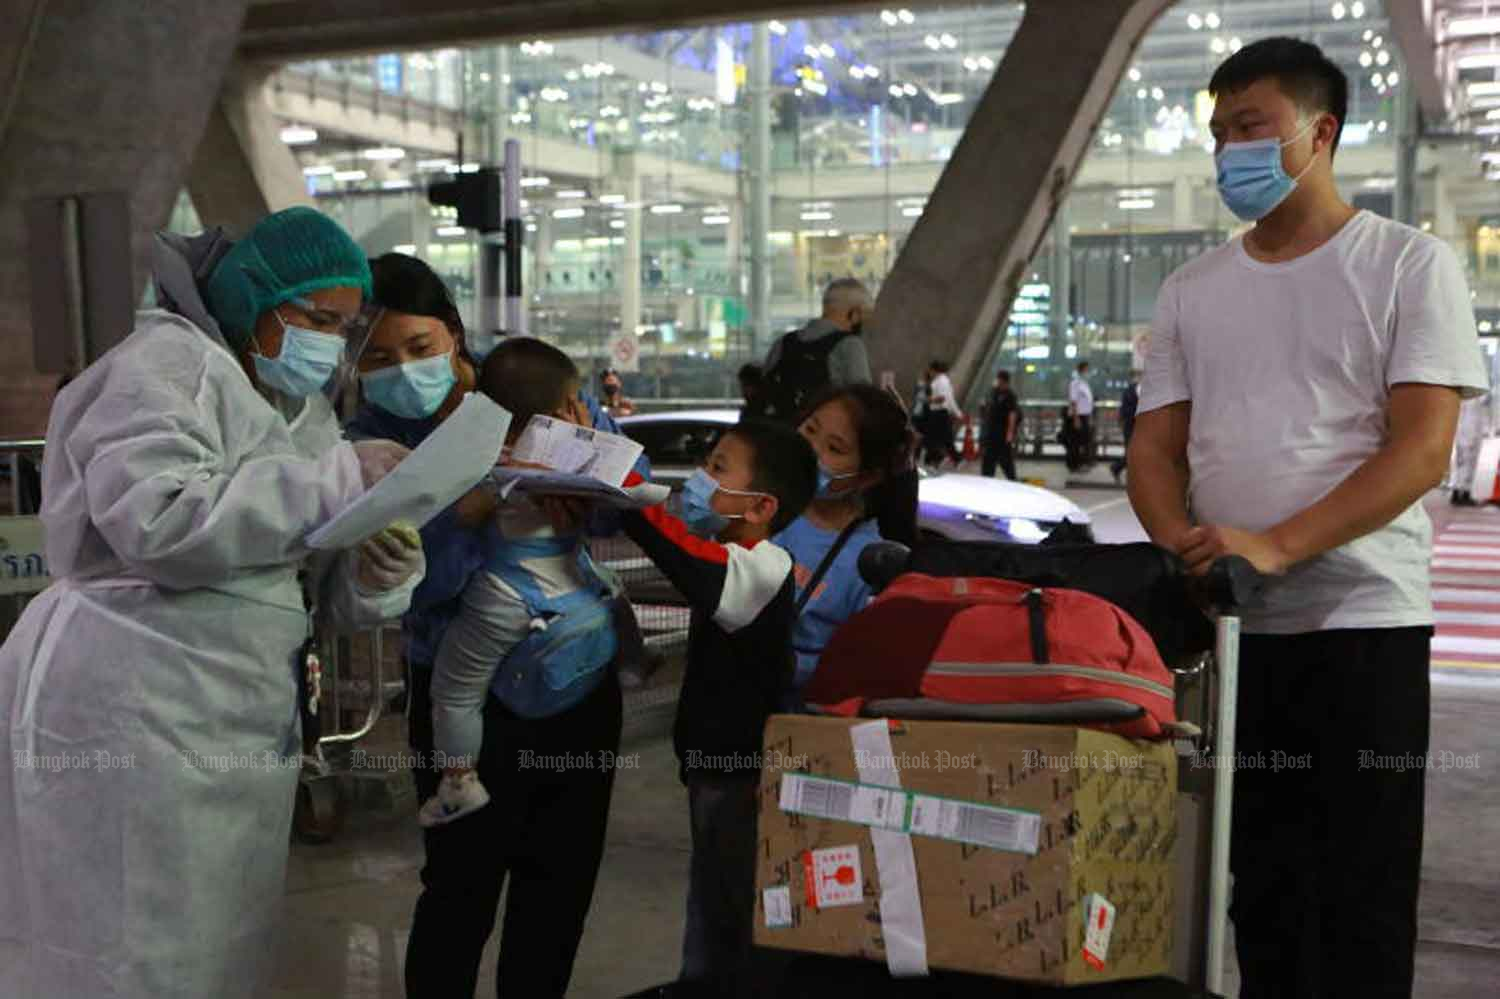 A disease control official receives a Chinese family who arrives at Suvarnabhumi airport in Samut Prakan province last month with special tourist visas. (Photo by Somchai Poomlard)